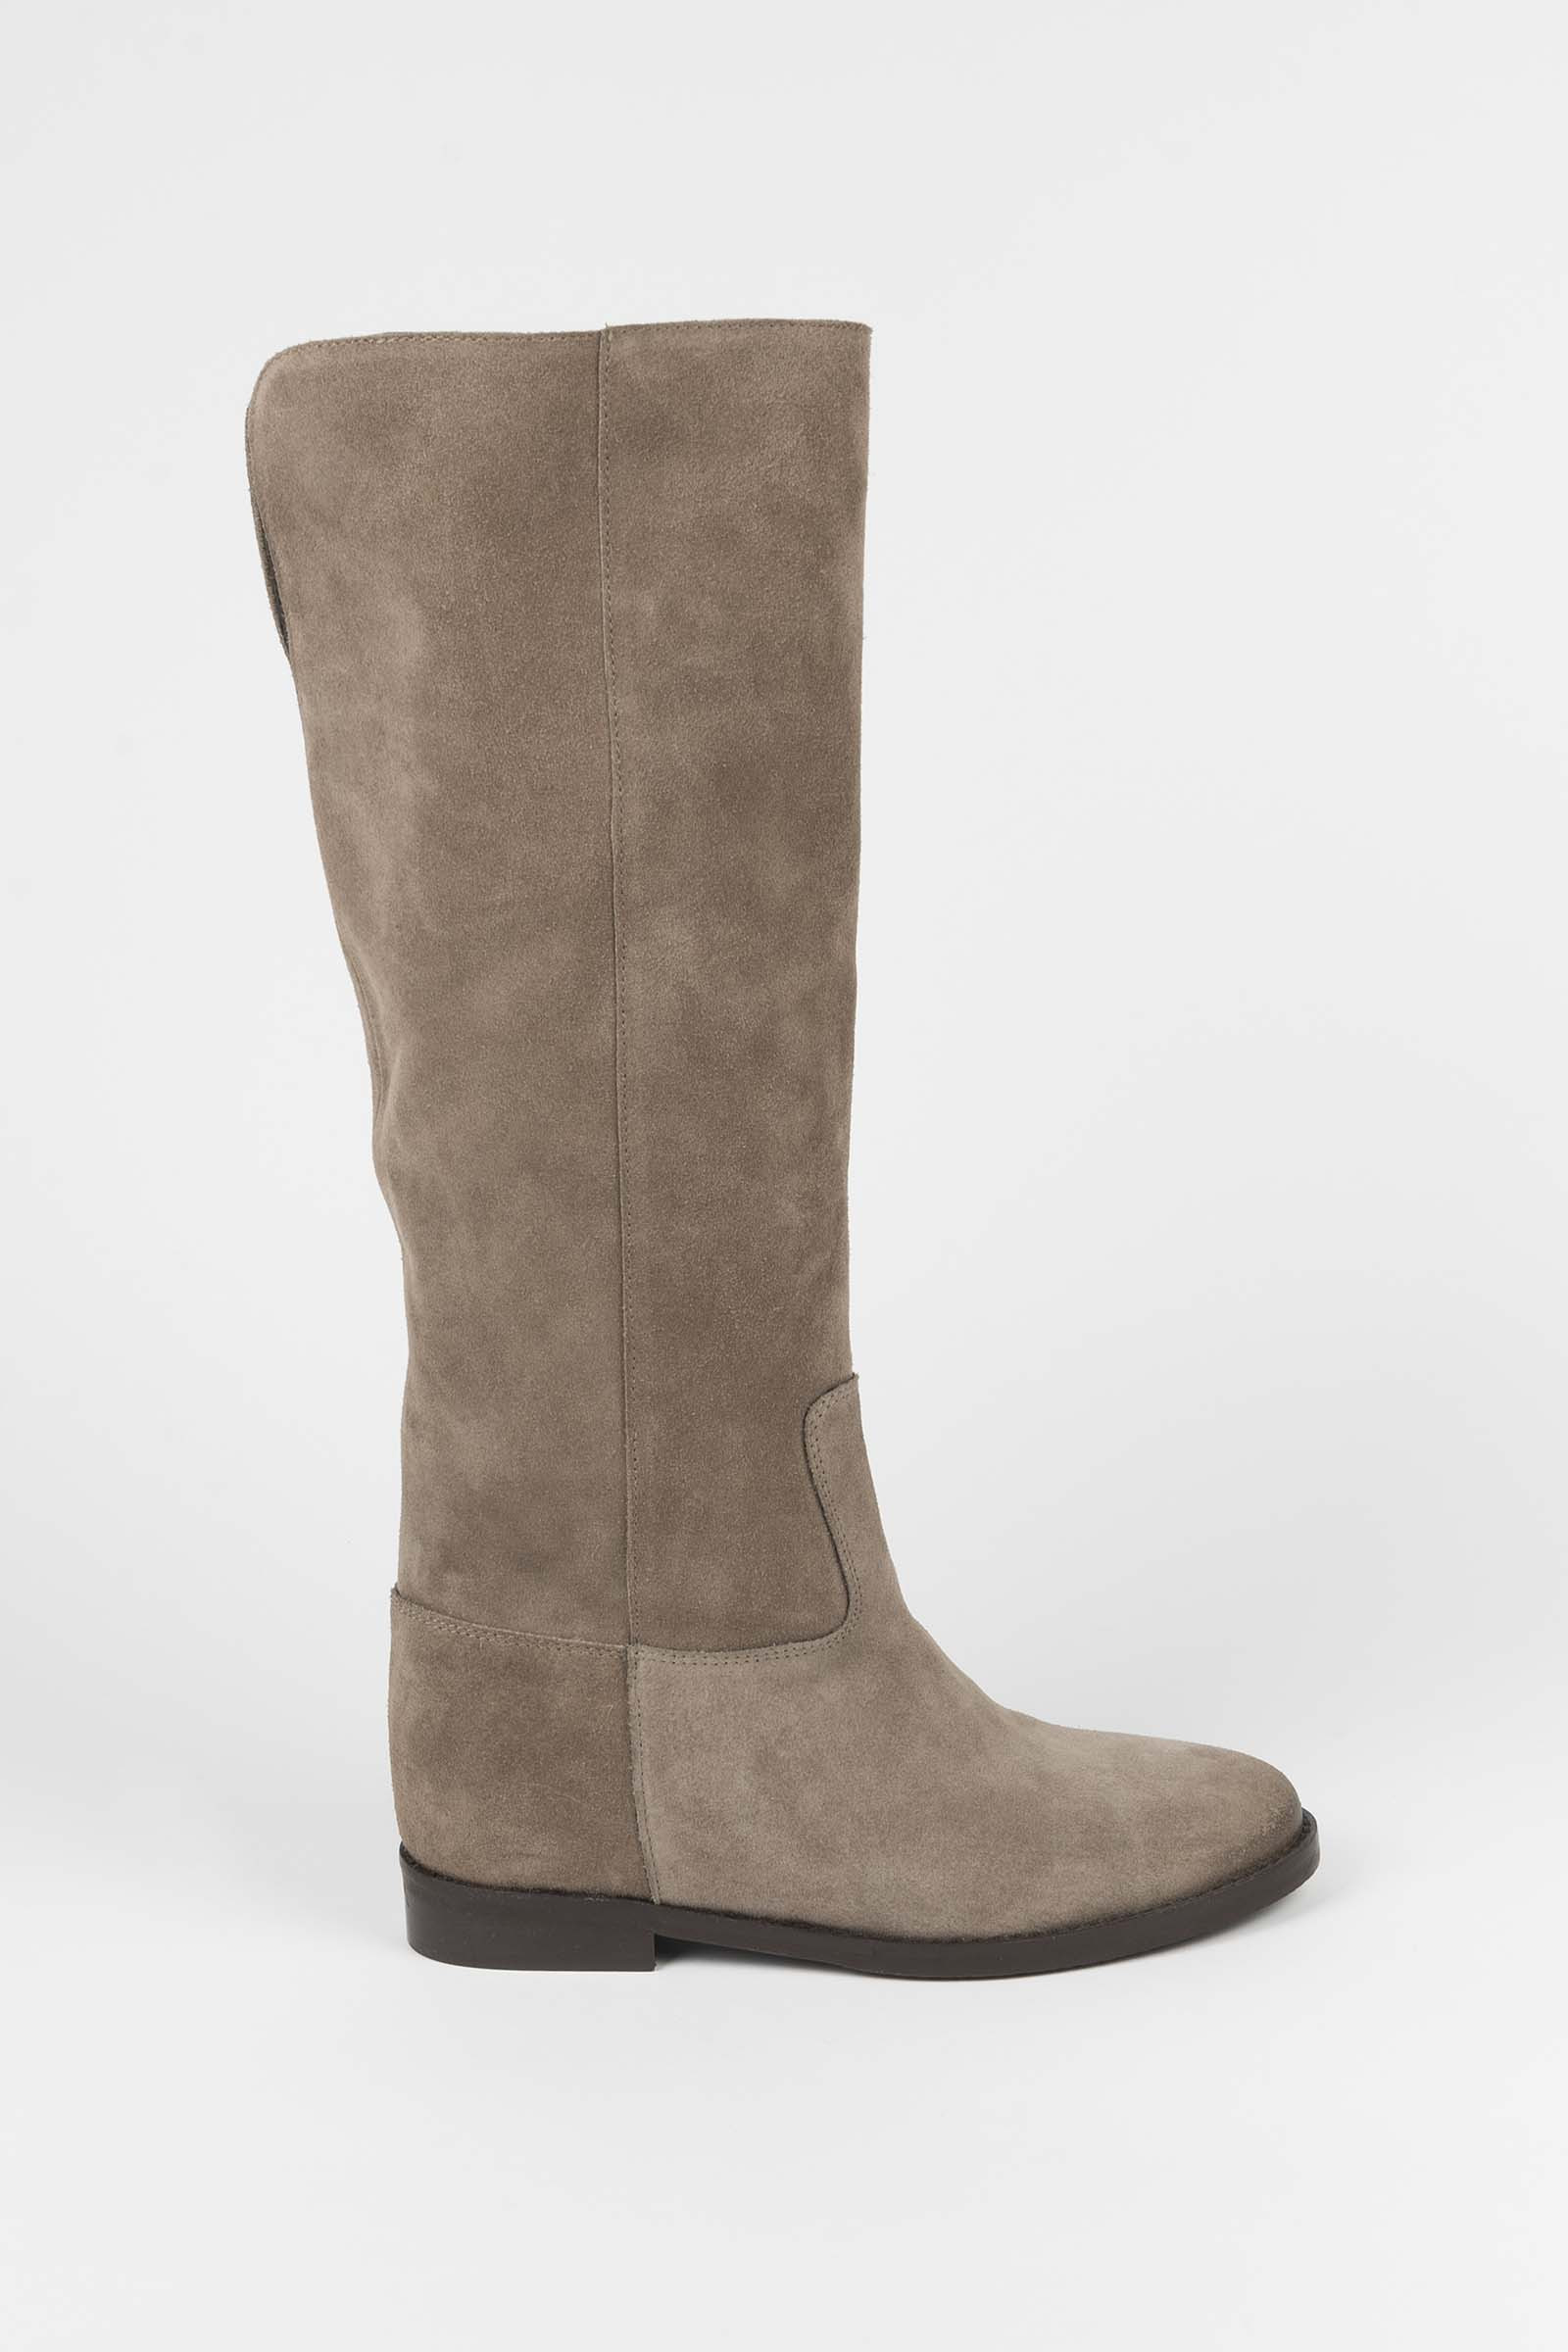 Taupe Suede Boots Elisa Rivera